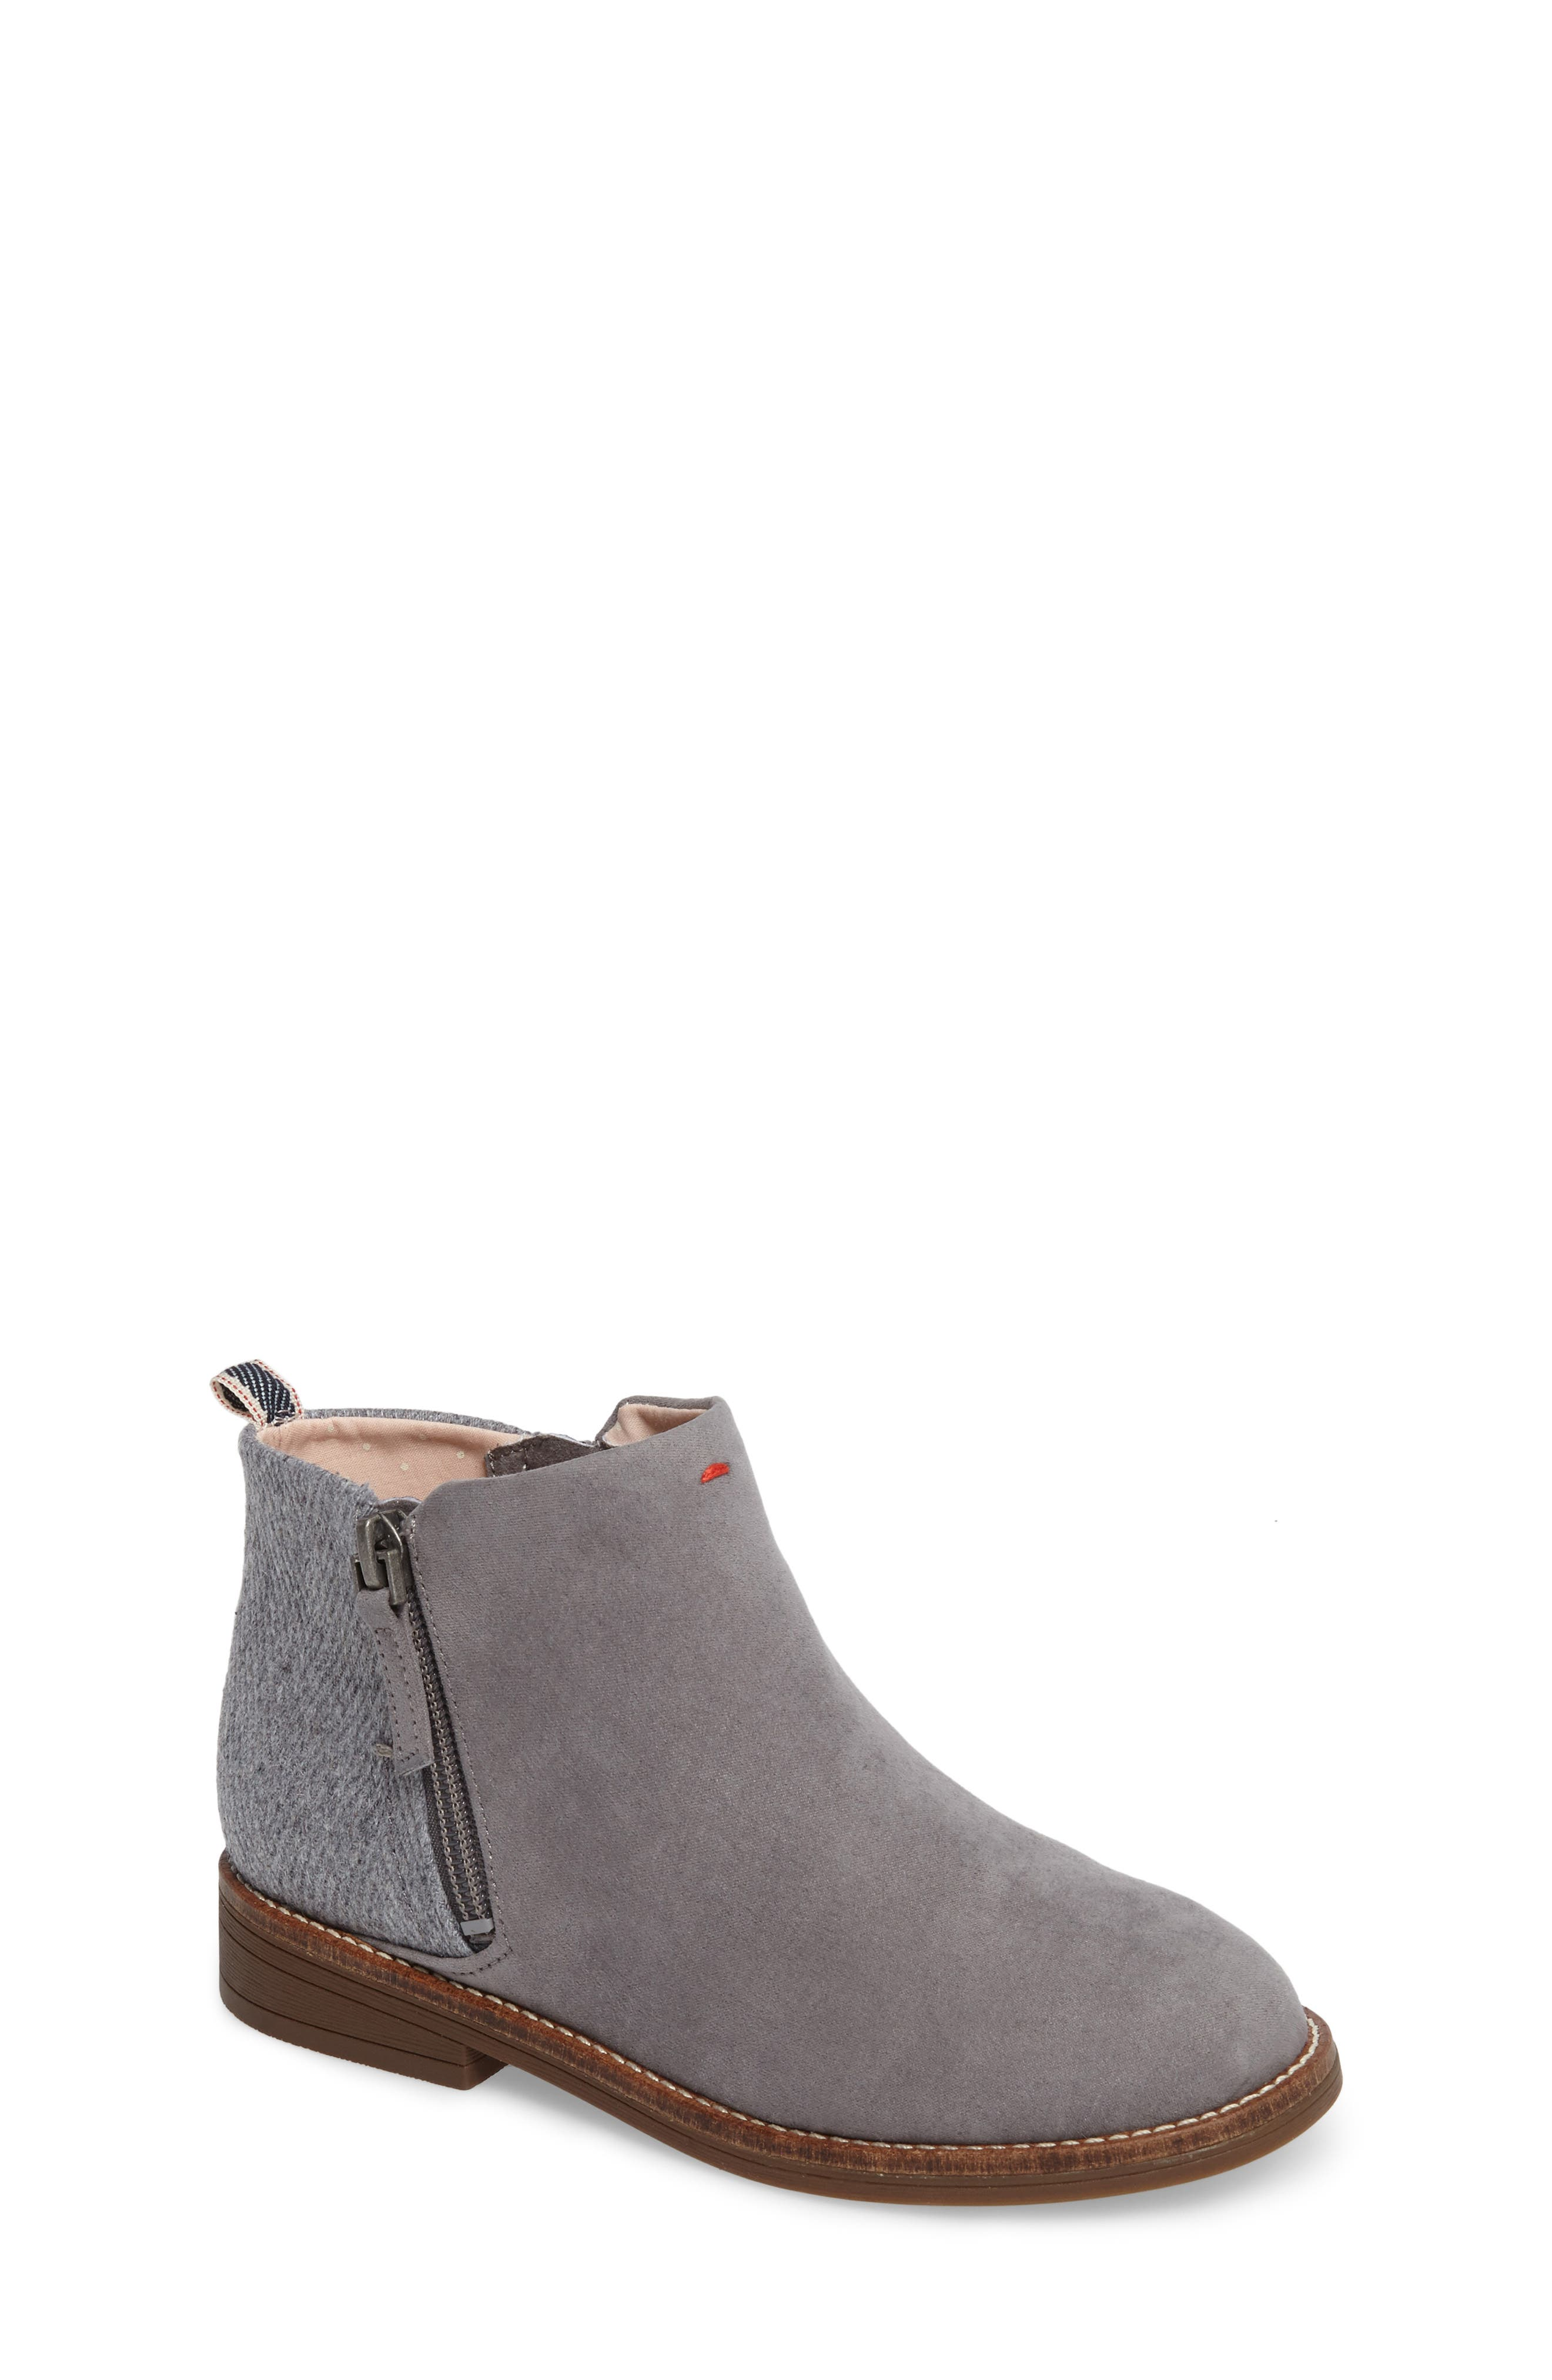 Main Image - ED Ellen DeGeneres Glynn Low Zip Bootie (Toddler, Little Kid & Big Kid)